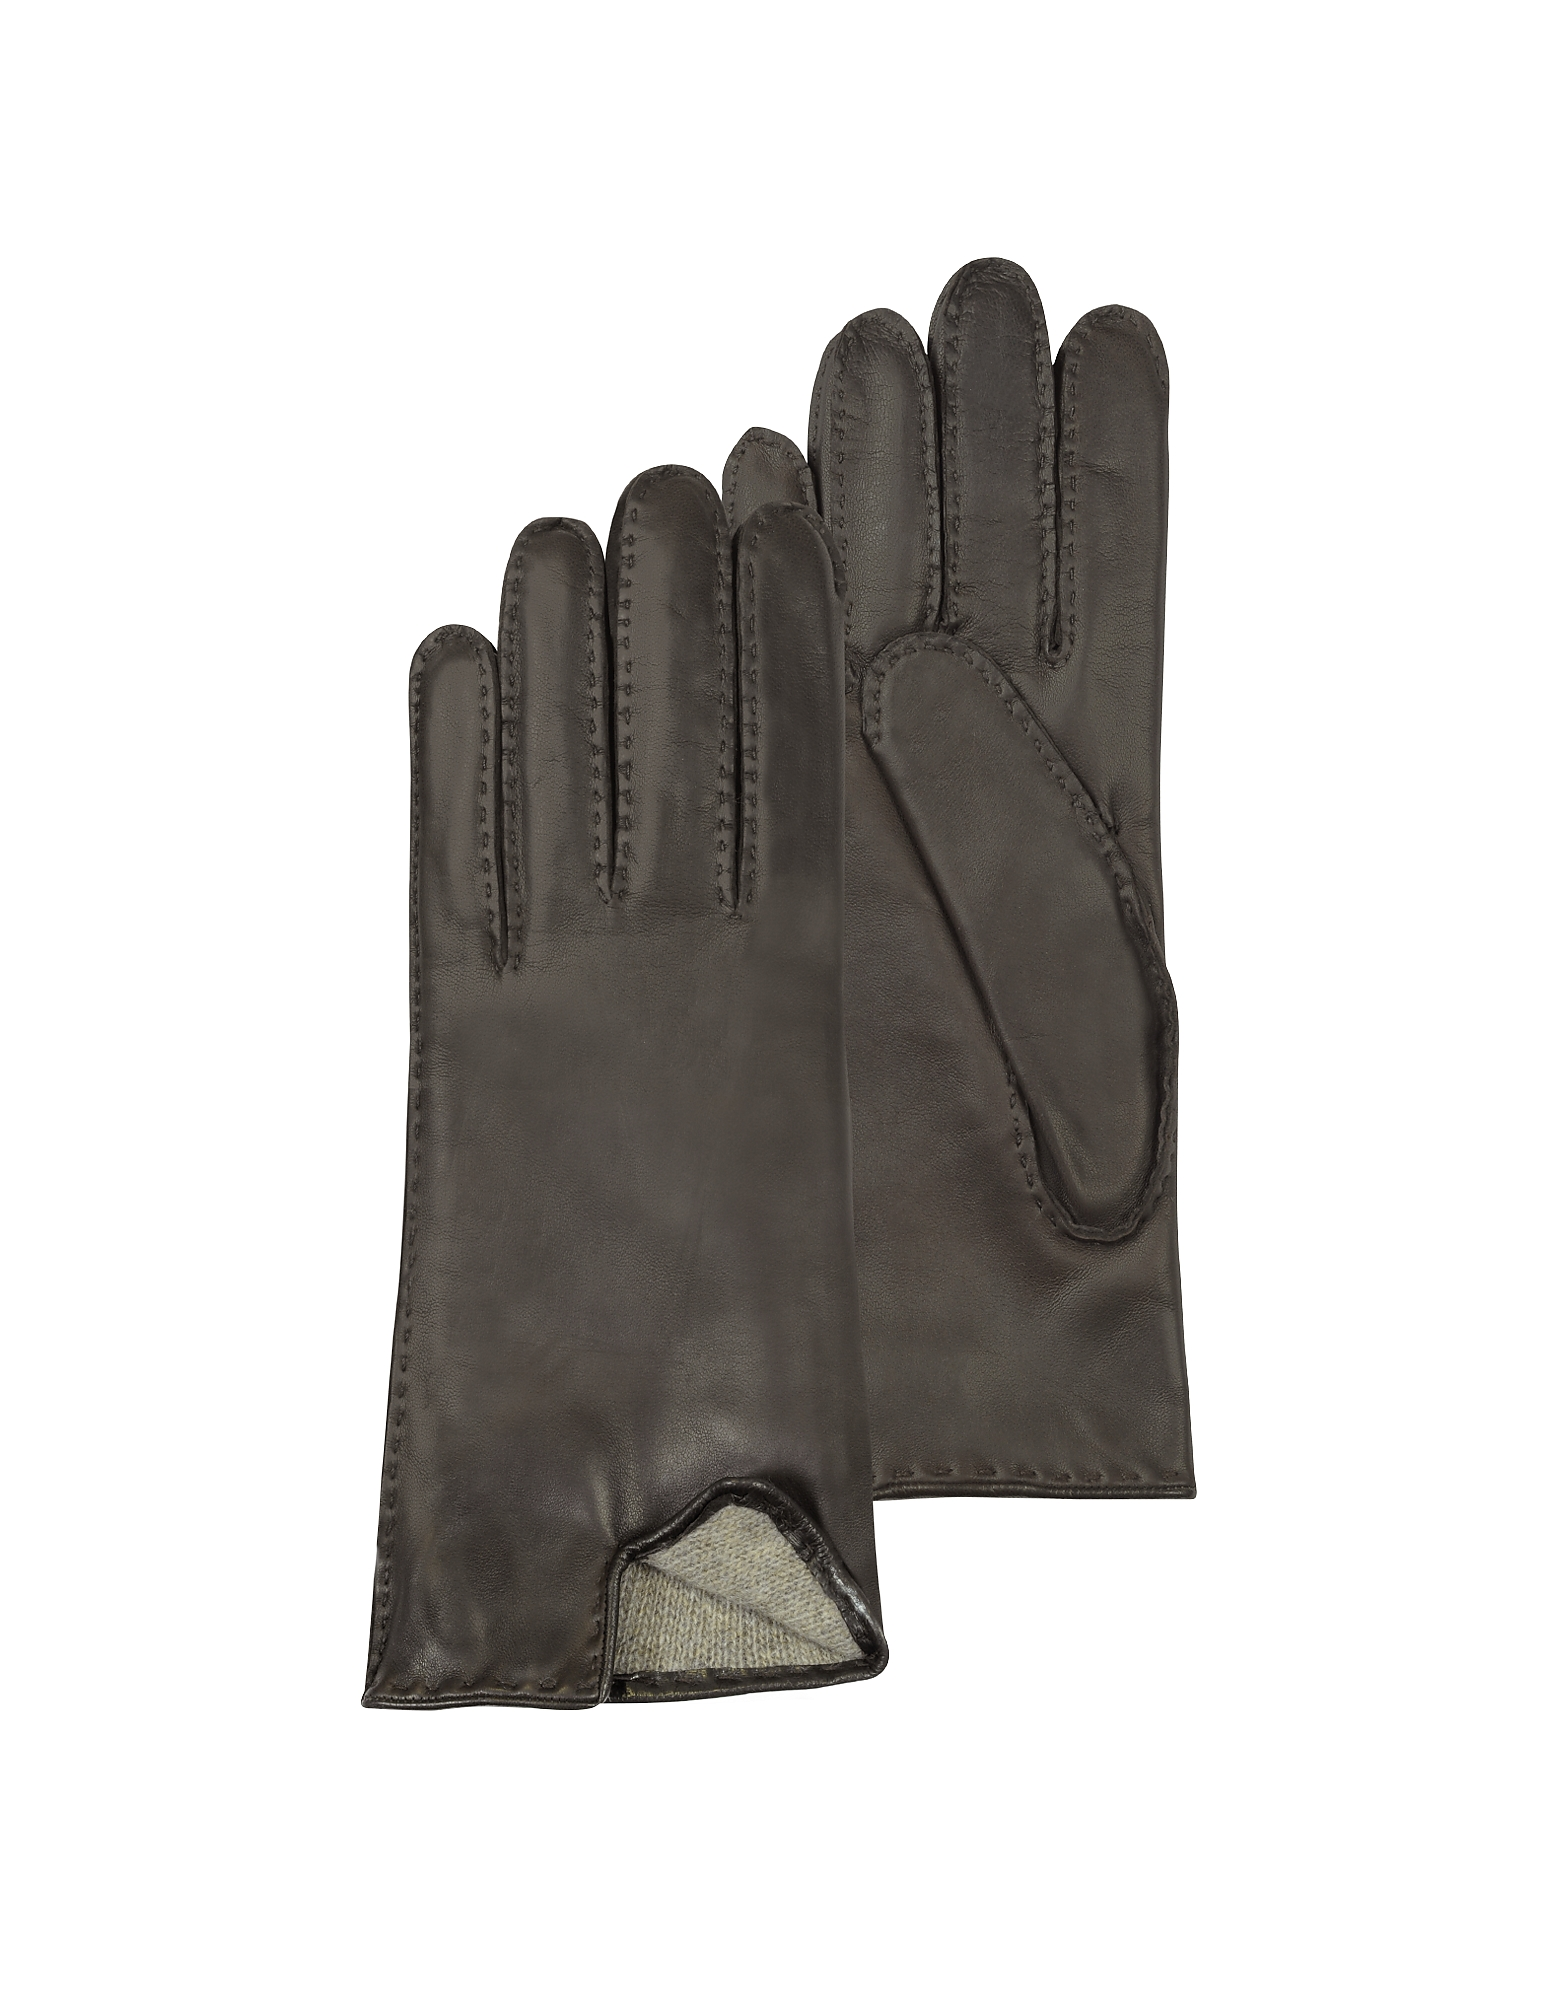 Women's Cashmere Lined Dark Brown Italian Leather Gloves от Forzieri.com INT